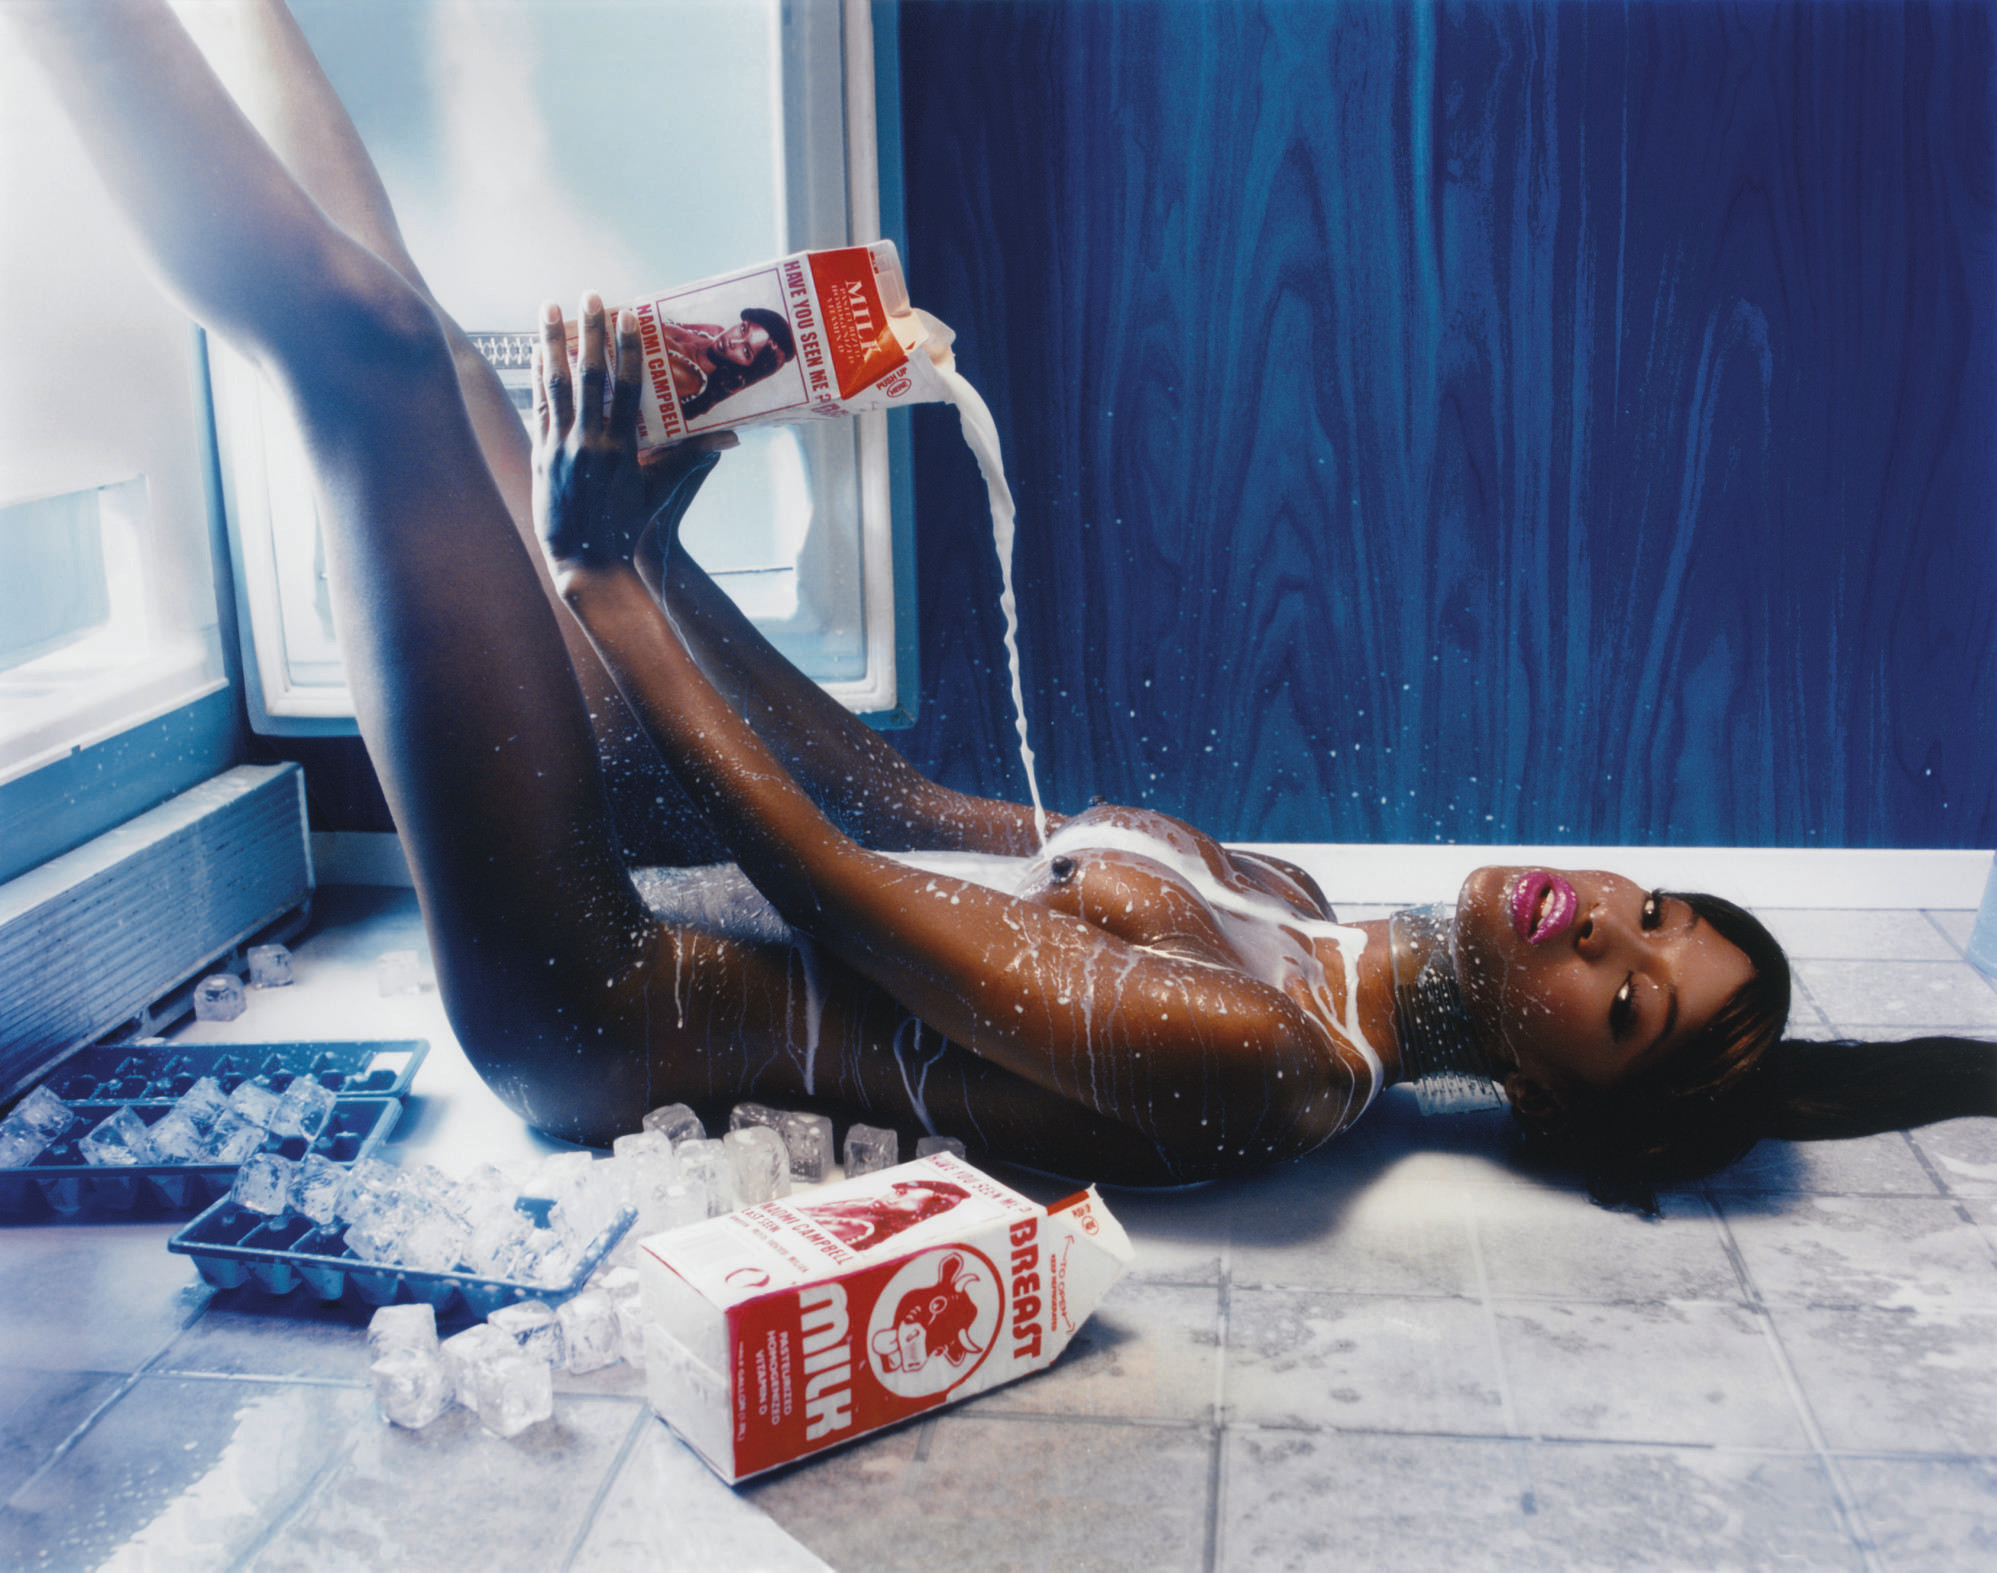 DAVID LACHAPELLE (B. 1964)